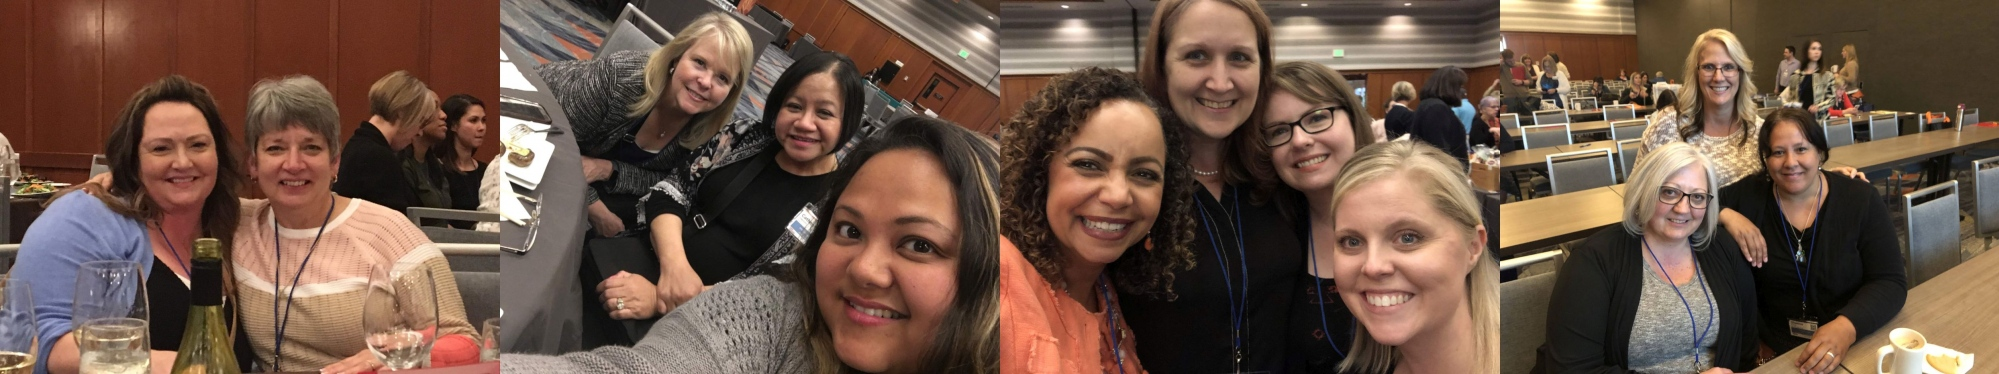 Friends and Colleagues at 2019 Conference